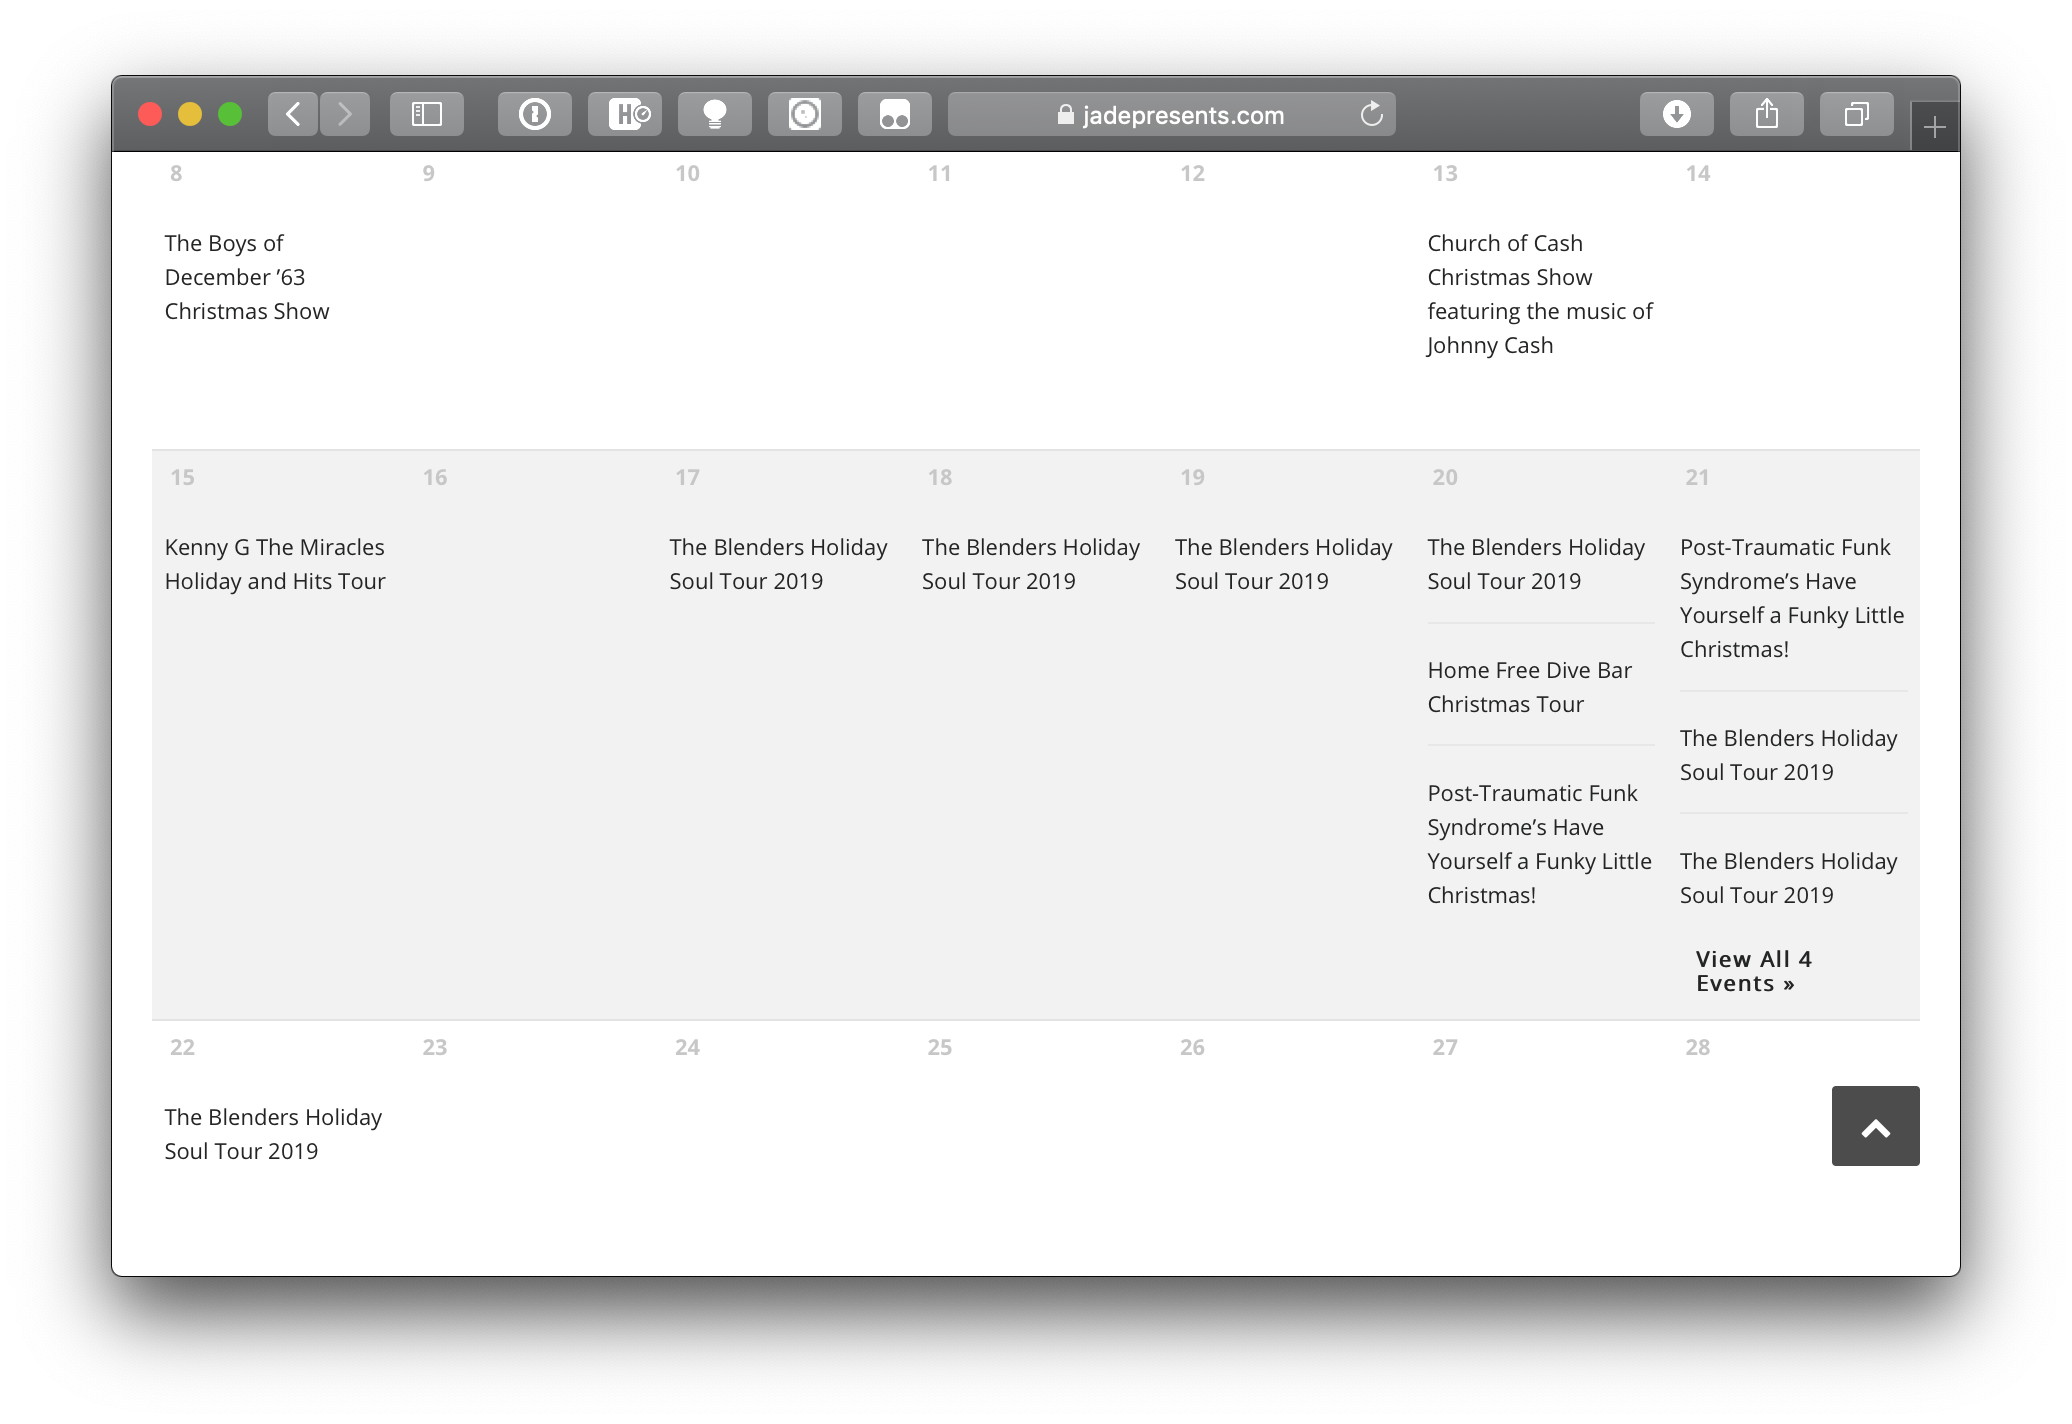 The month view of Jade's online calendar where one day contains three events with a link to view more events.